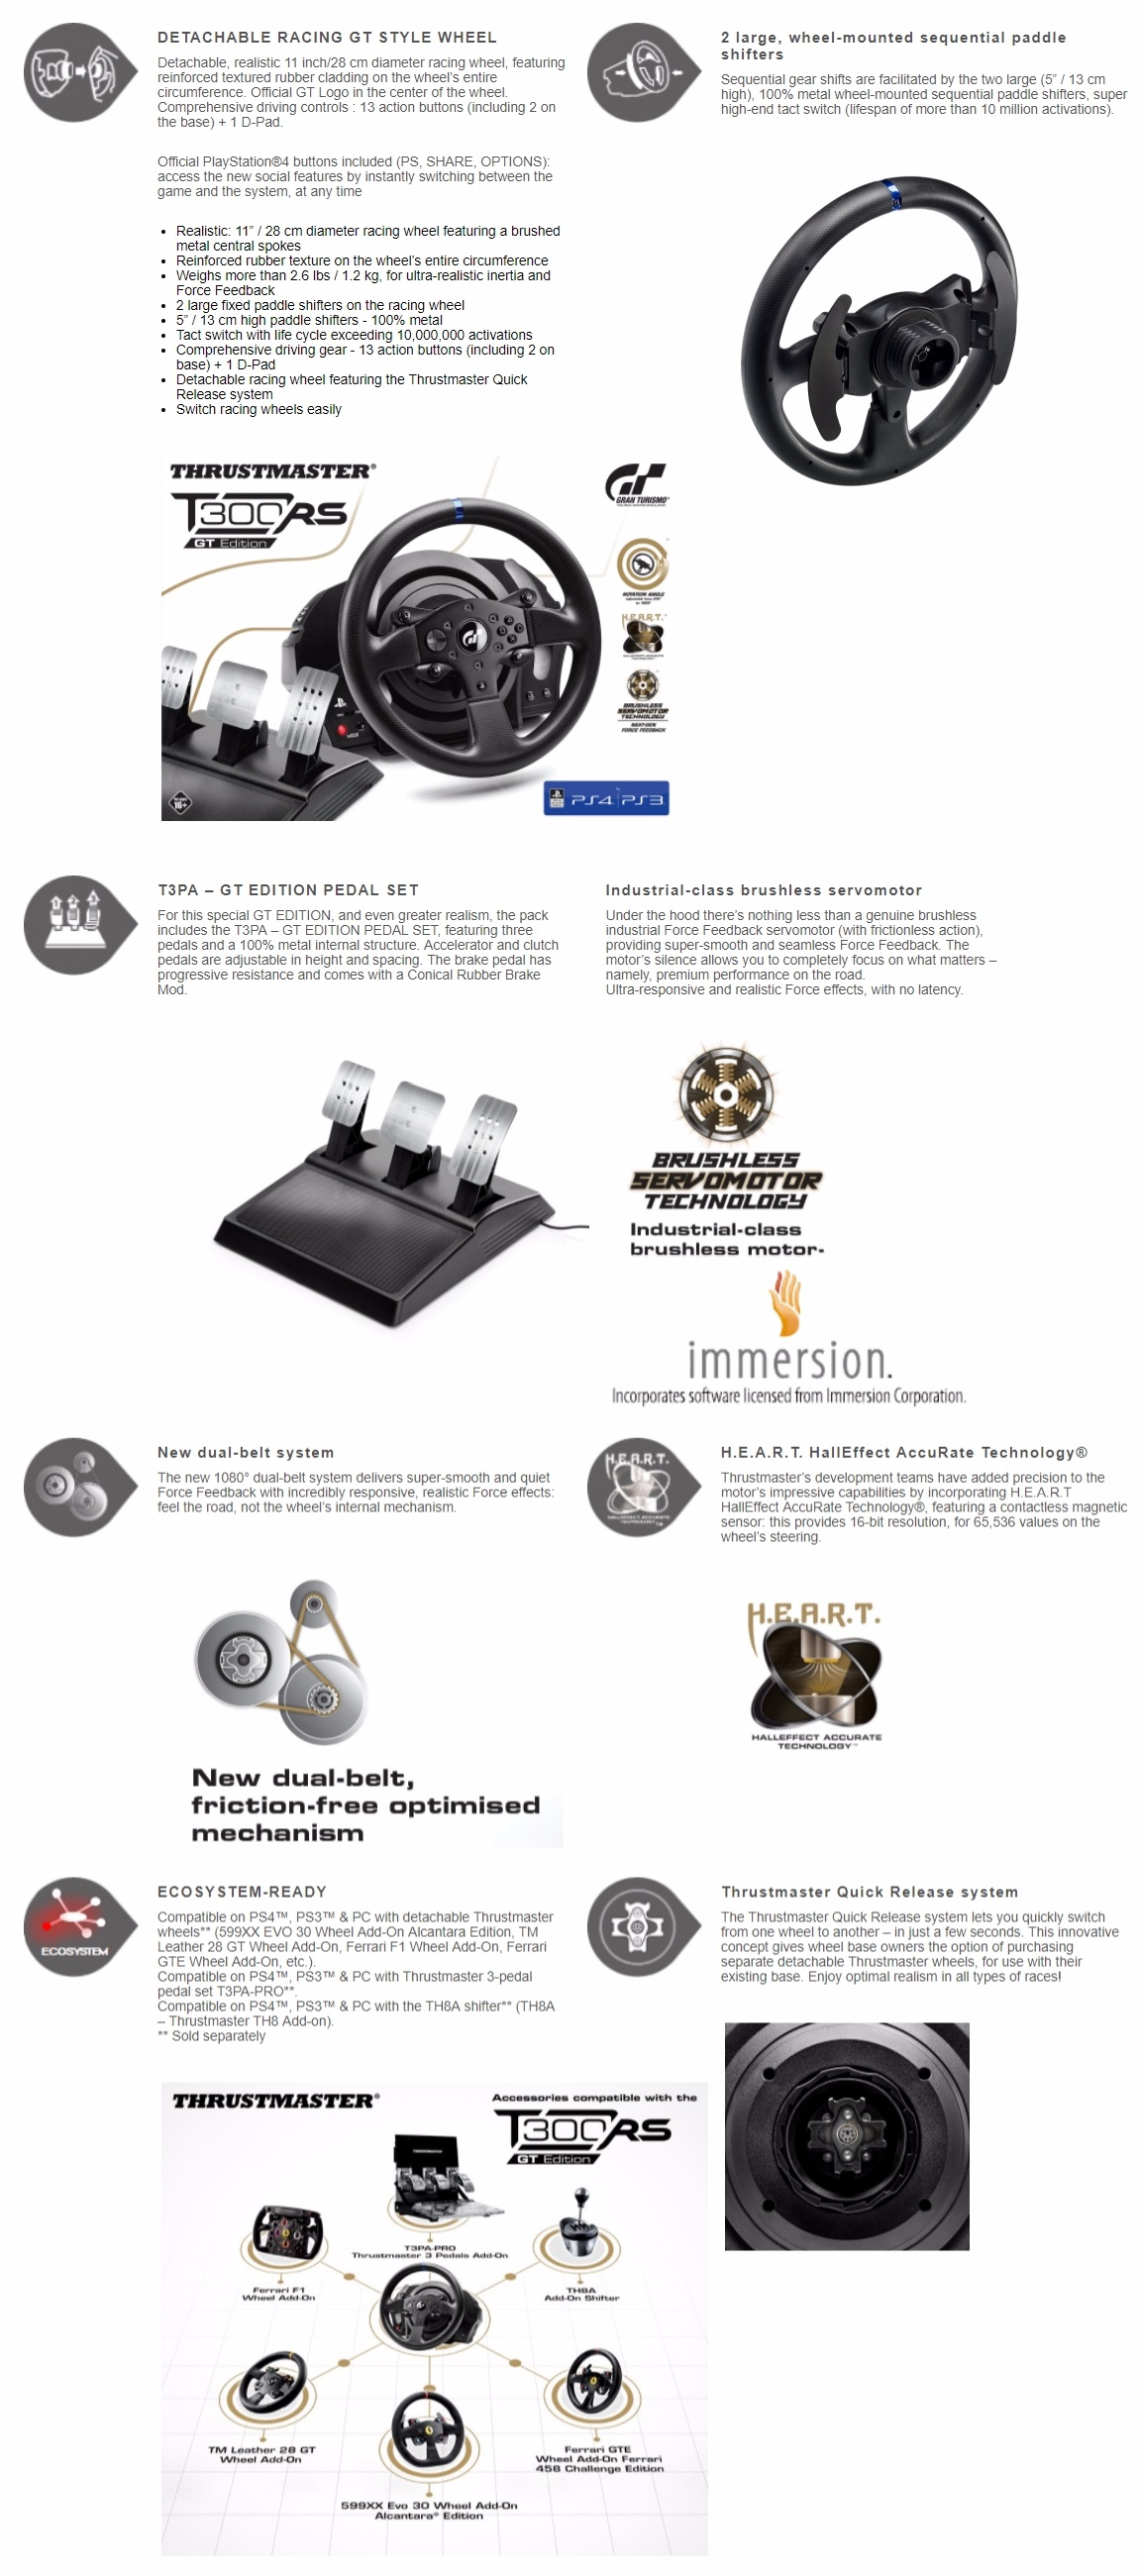 A large marketing image providing additional information about the product Thrustmaster T300 RS GT Edition Force Feedback Racing Wheel For PC, PS3 & PS4 - Additional alt info not provided